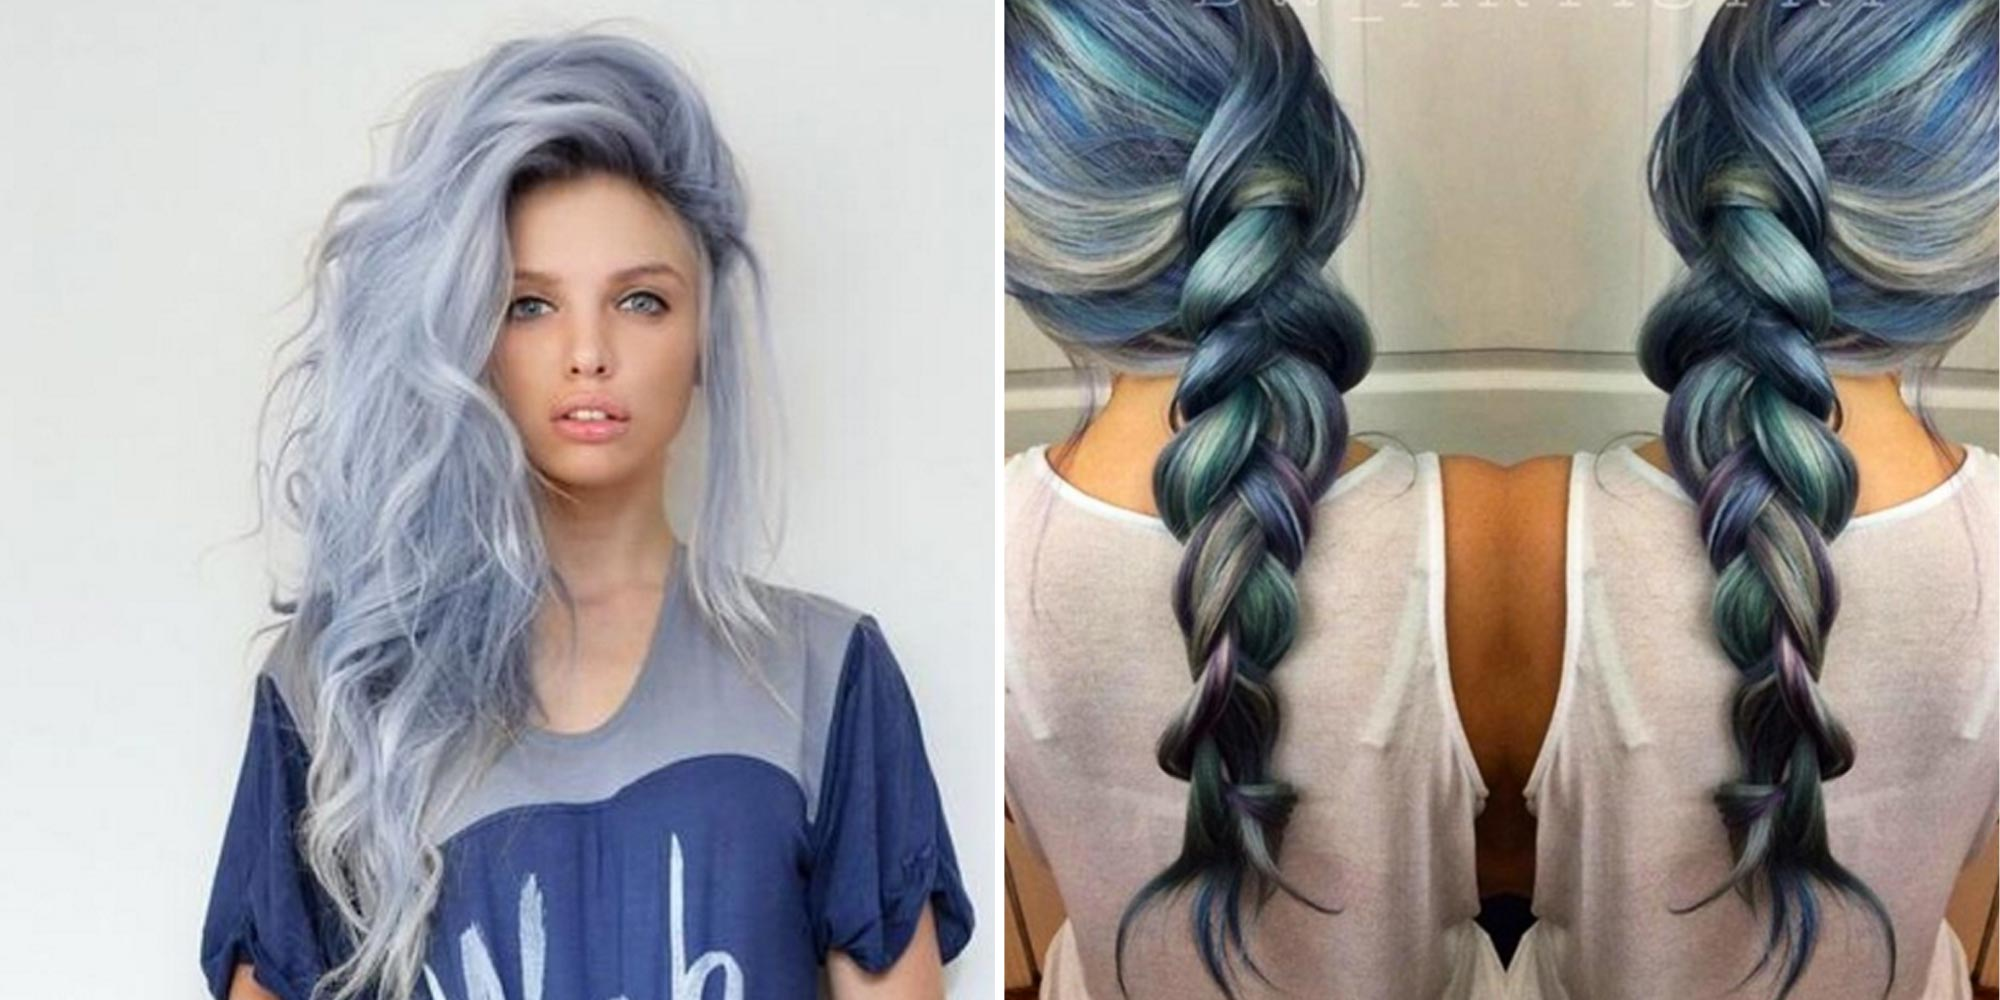 Denim Hair Is The Low Key Cool Way To Make Your Hair Stand Out